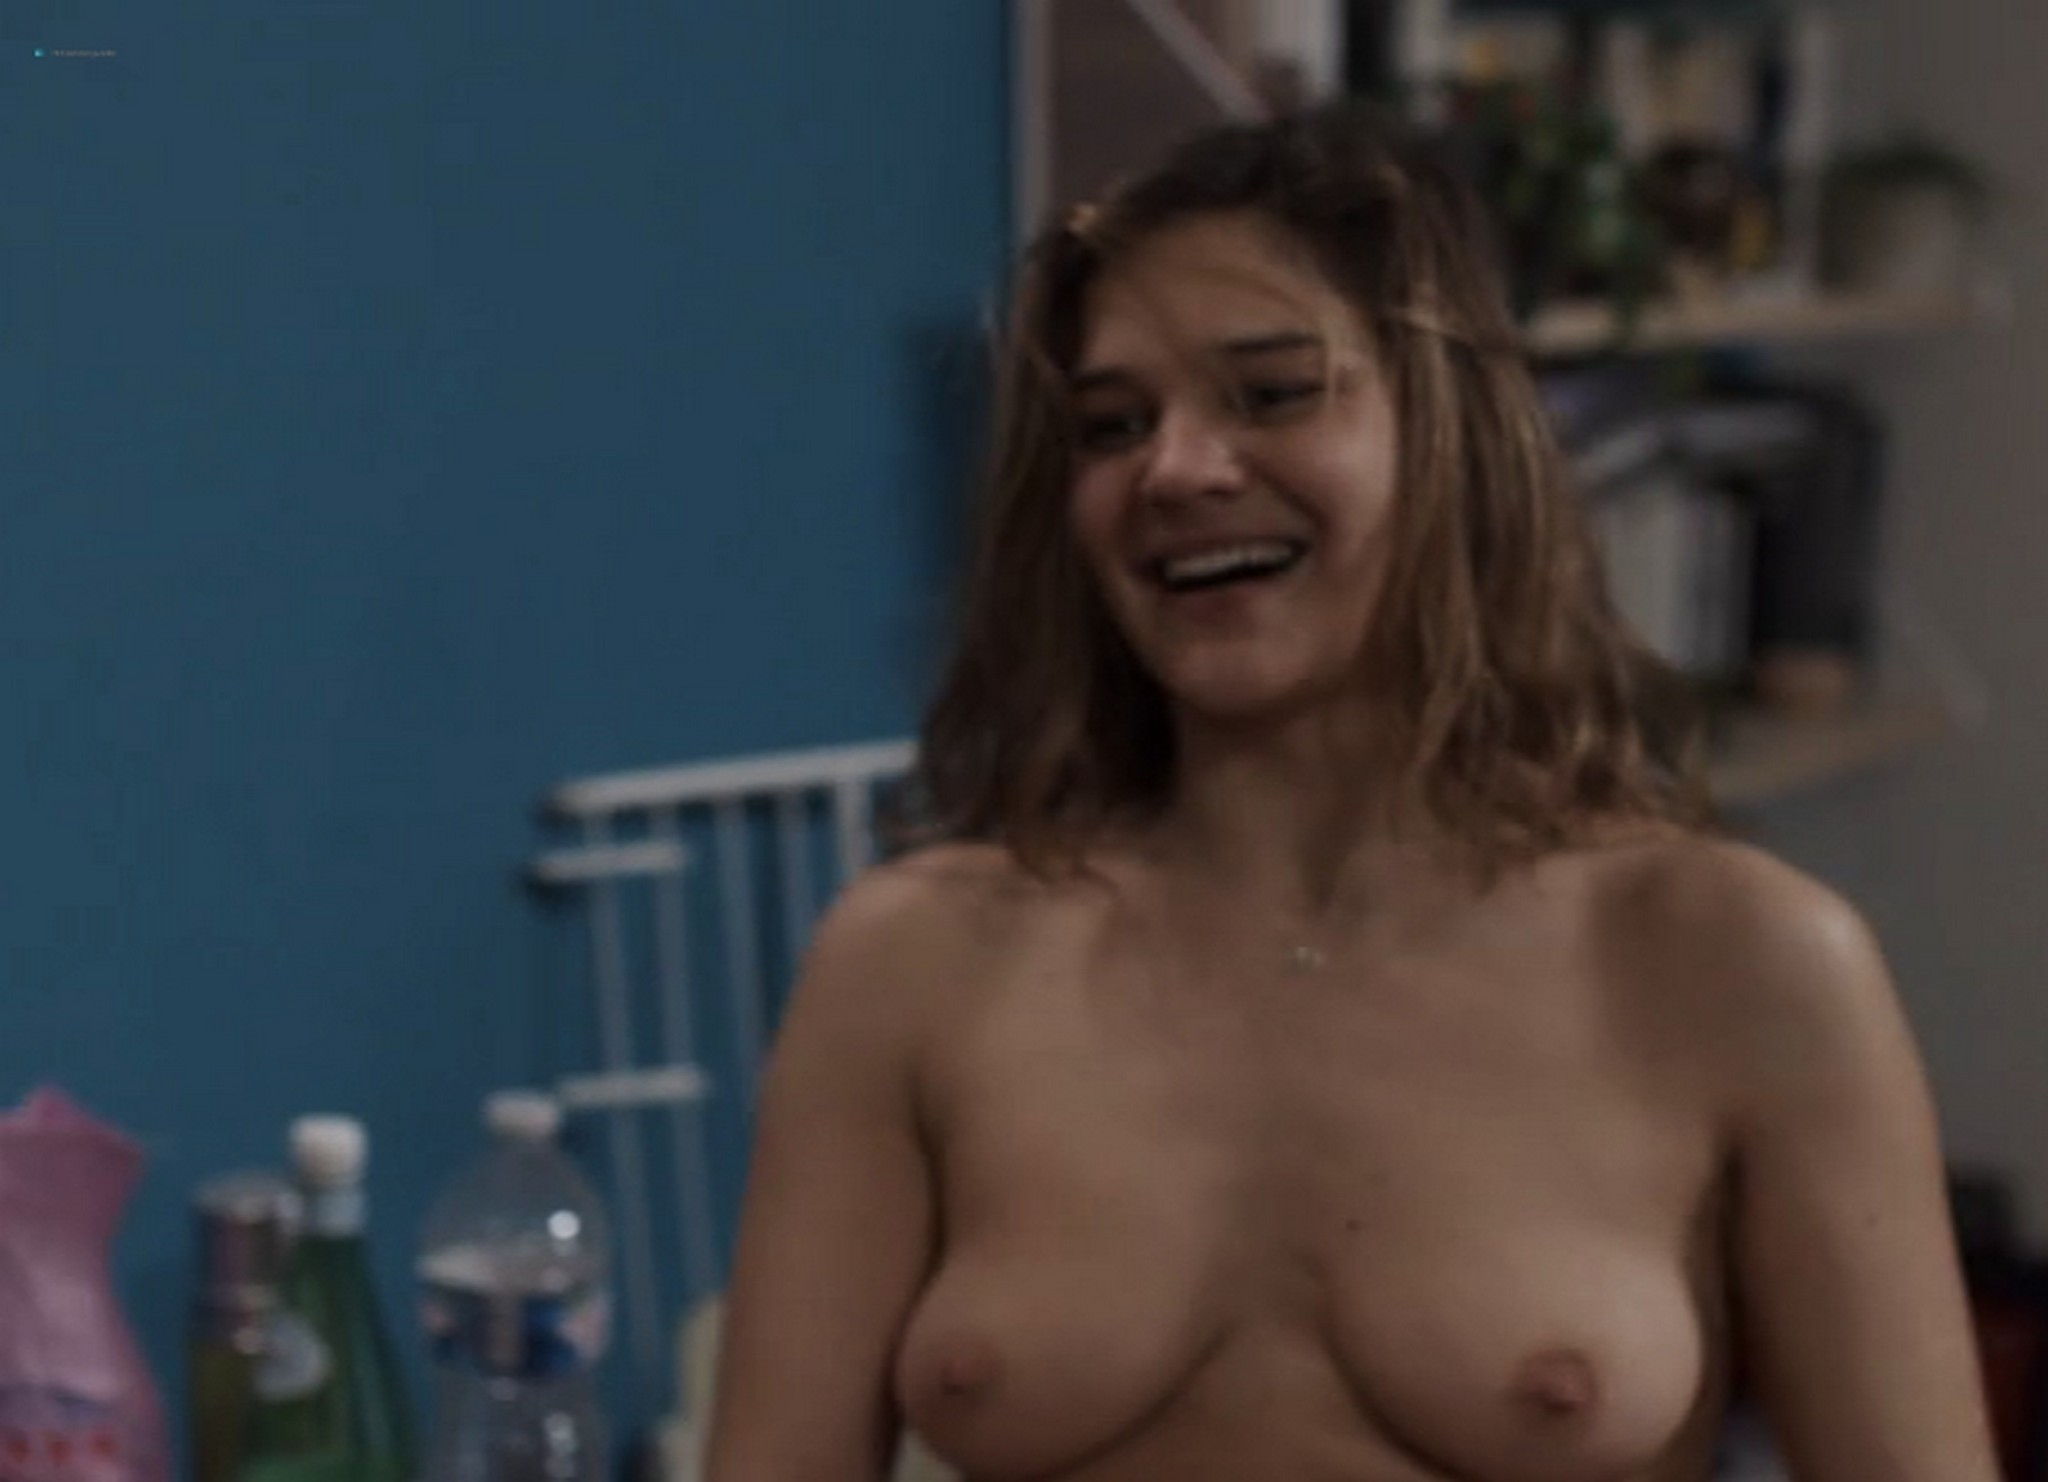 Marie Denarnaud nude full frontal nude boobs and labia - Une Histoire Banale (FR-2014) (12)